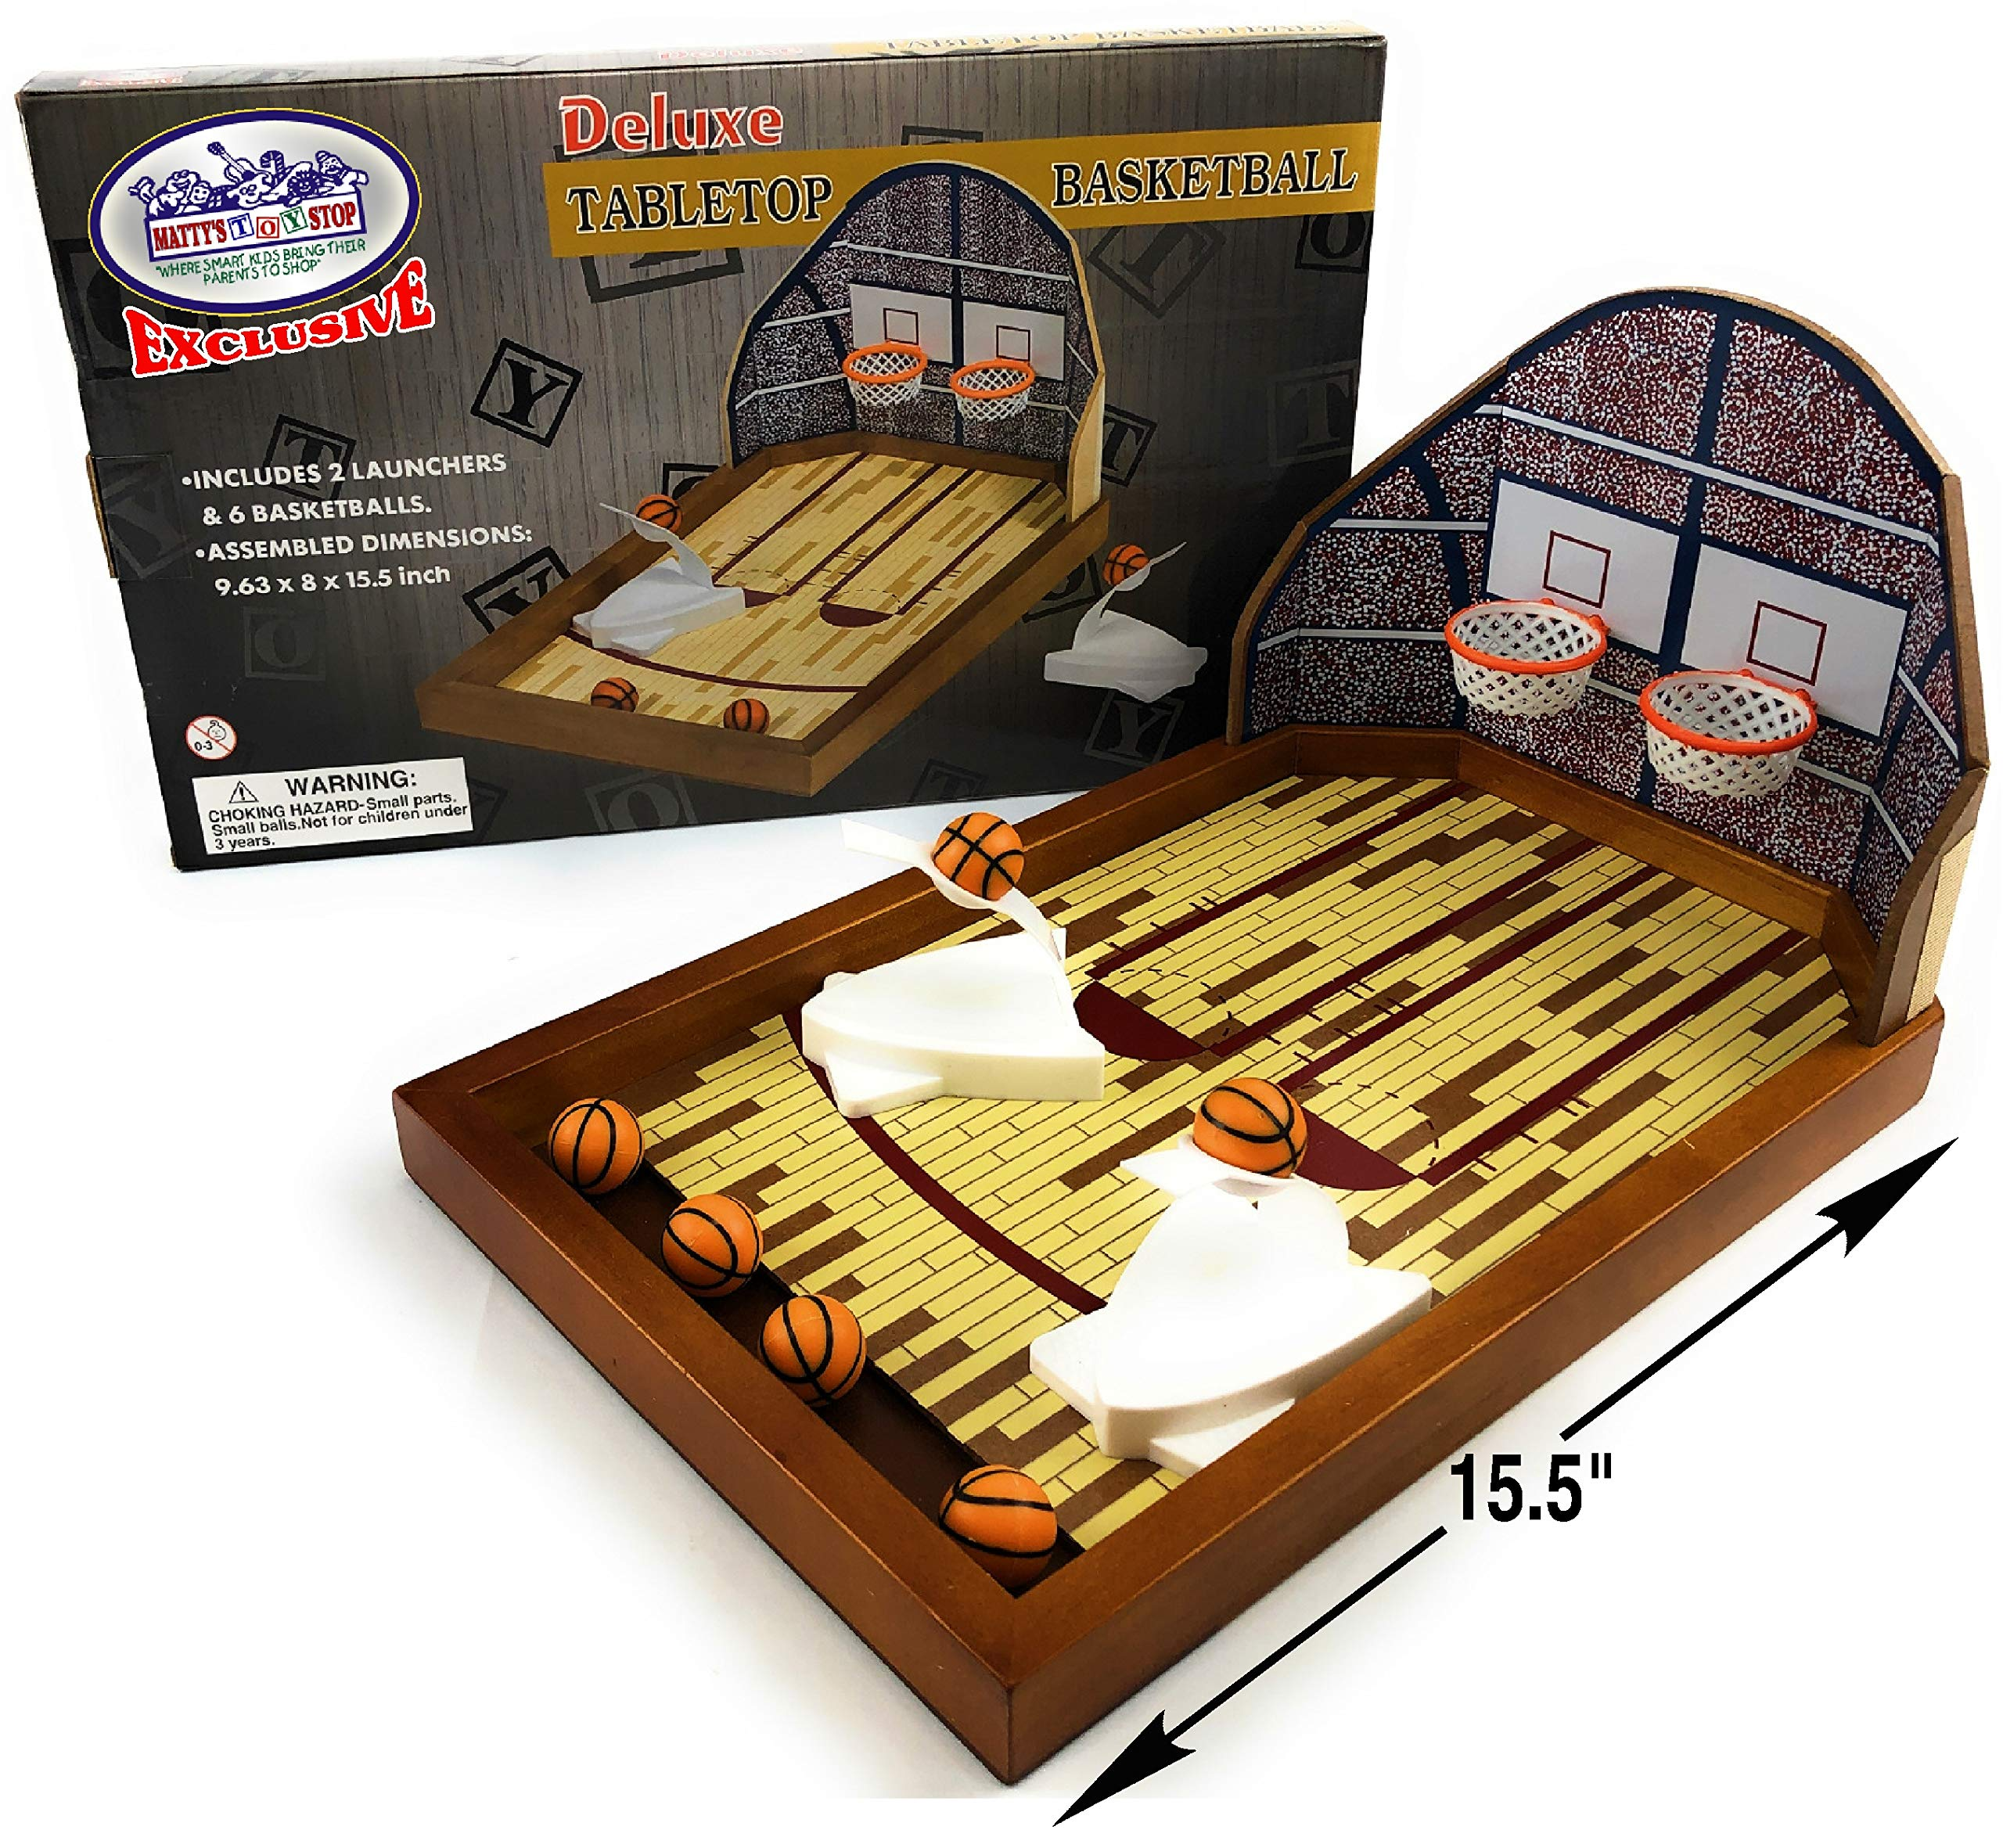 Matty's Toy Stop Deluxe Wooden Mini Tabletop Basketball Game for 2 Players (Includes 2 Launchers & 6 Basketballs) by Mɑtty's Toy Stop